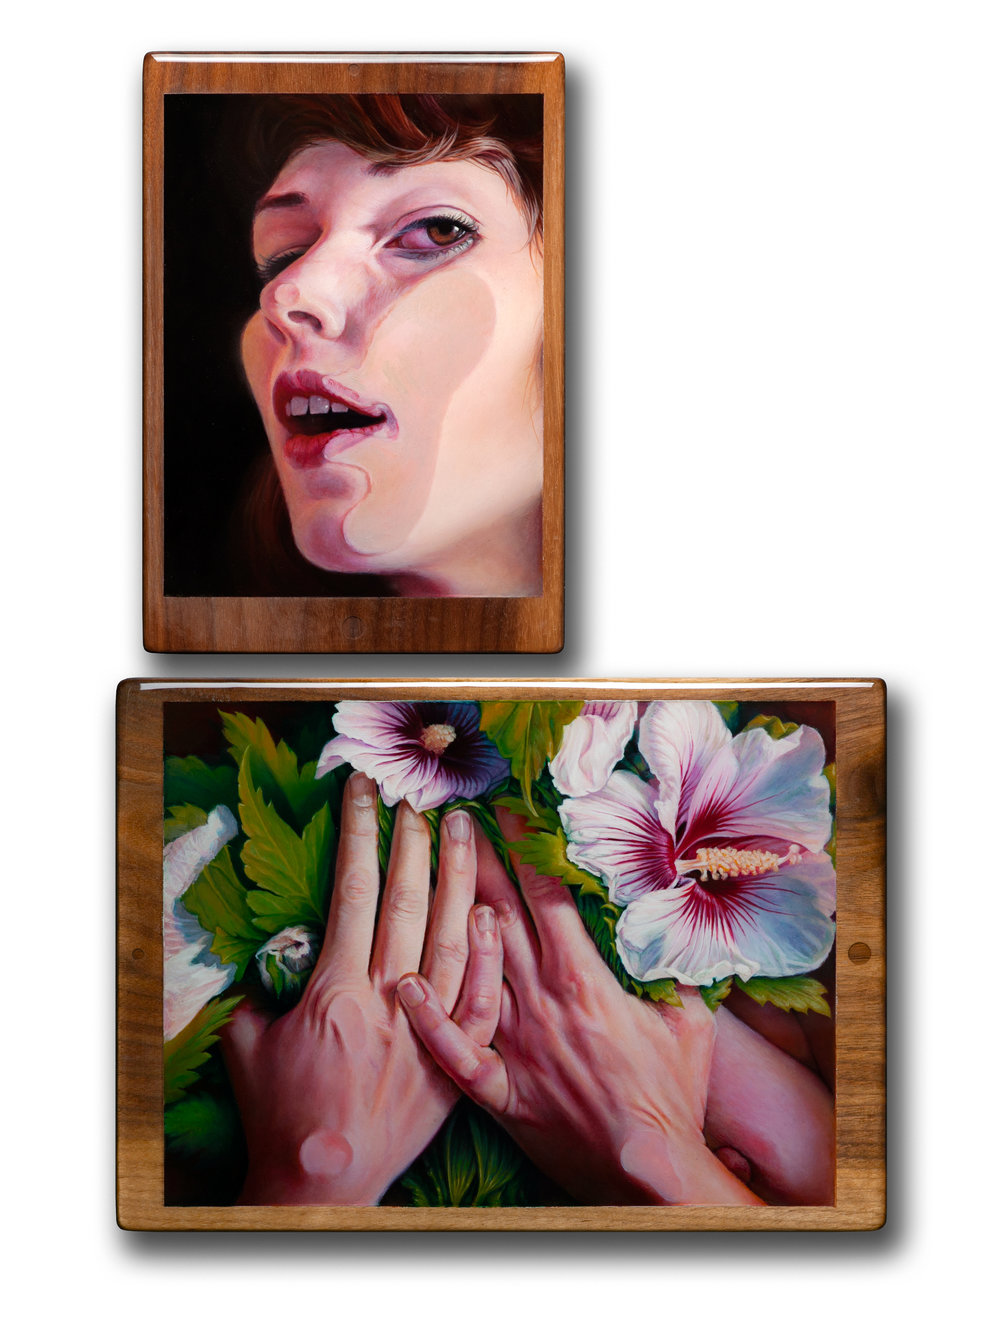 iPressed, oil on western walnut hardwood iPad replicas, 6.5x9 and 8.5x12 inches, 2016,